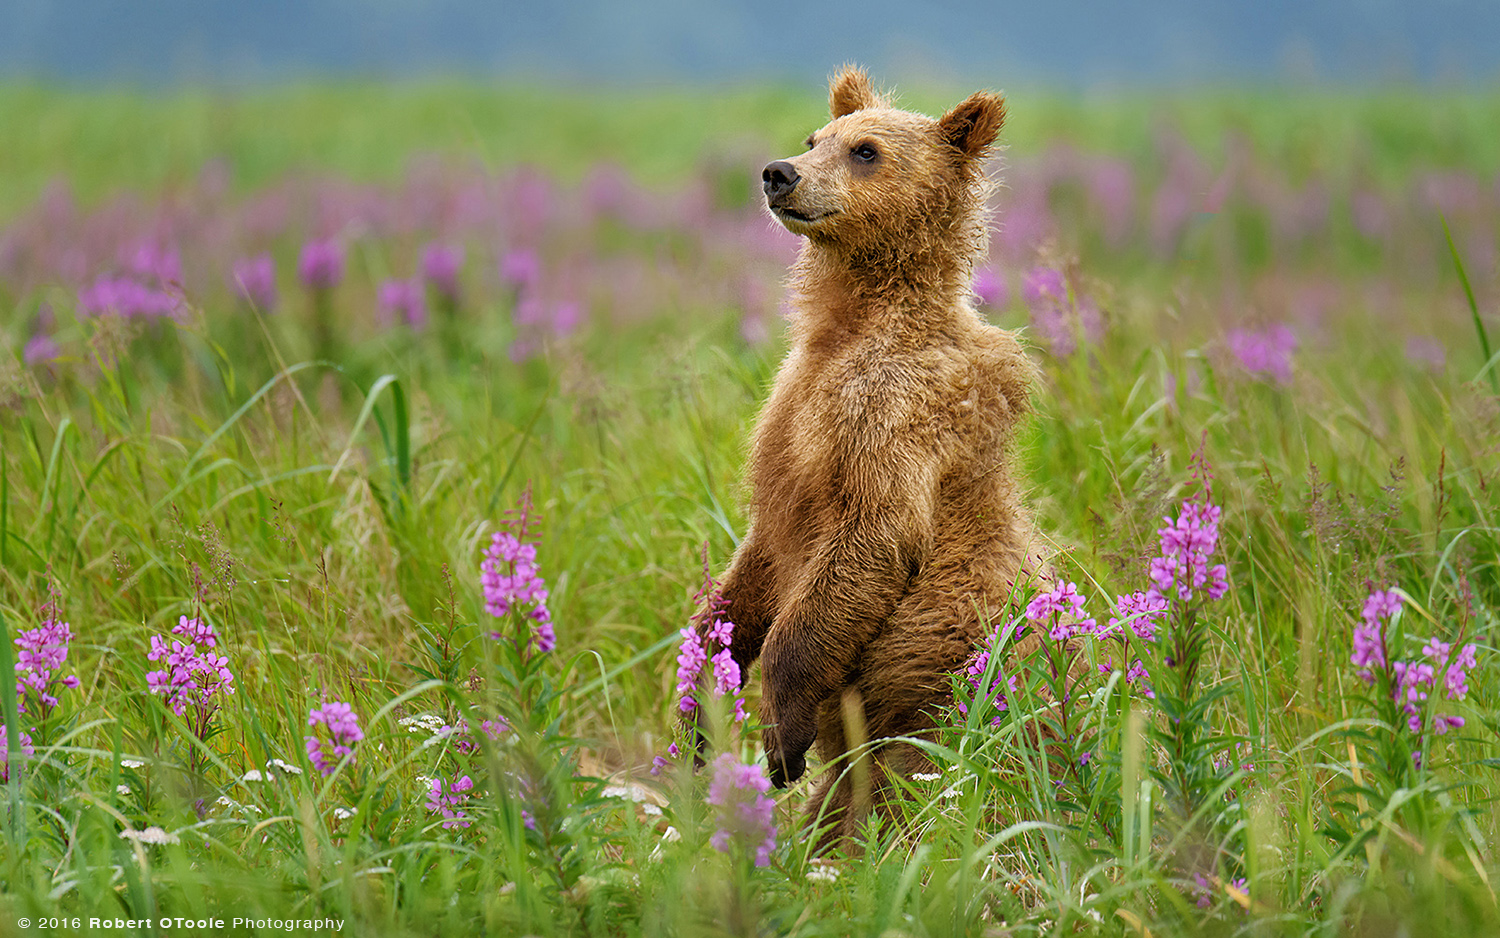 Bear-cub-in-fireweed-flowers-Robert-OToole-Photography